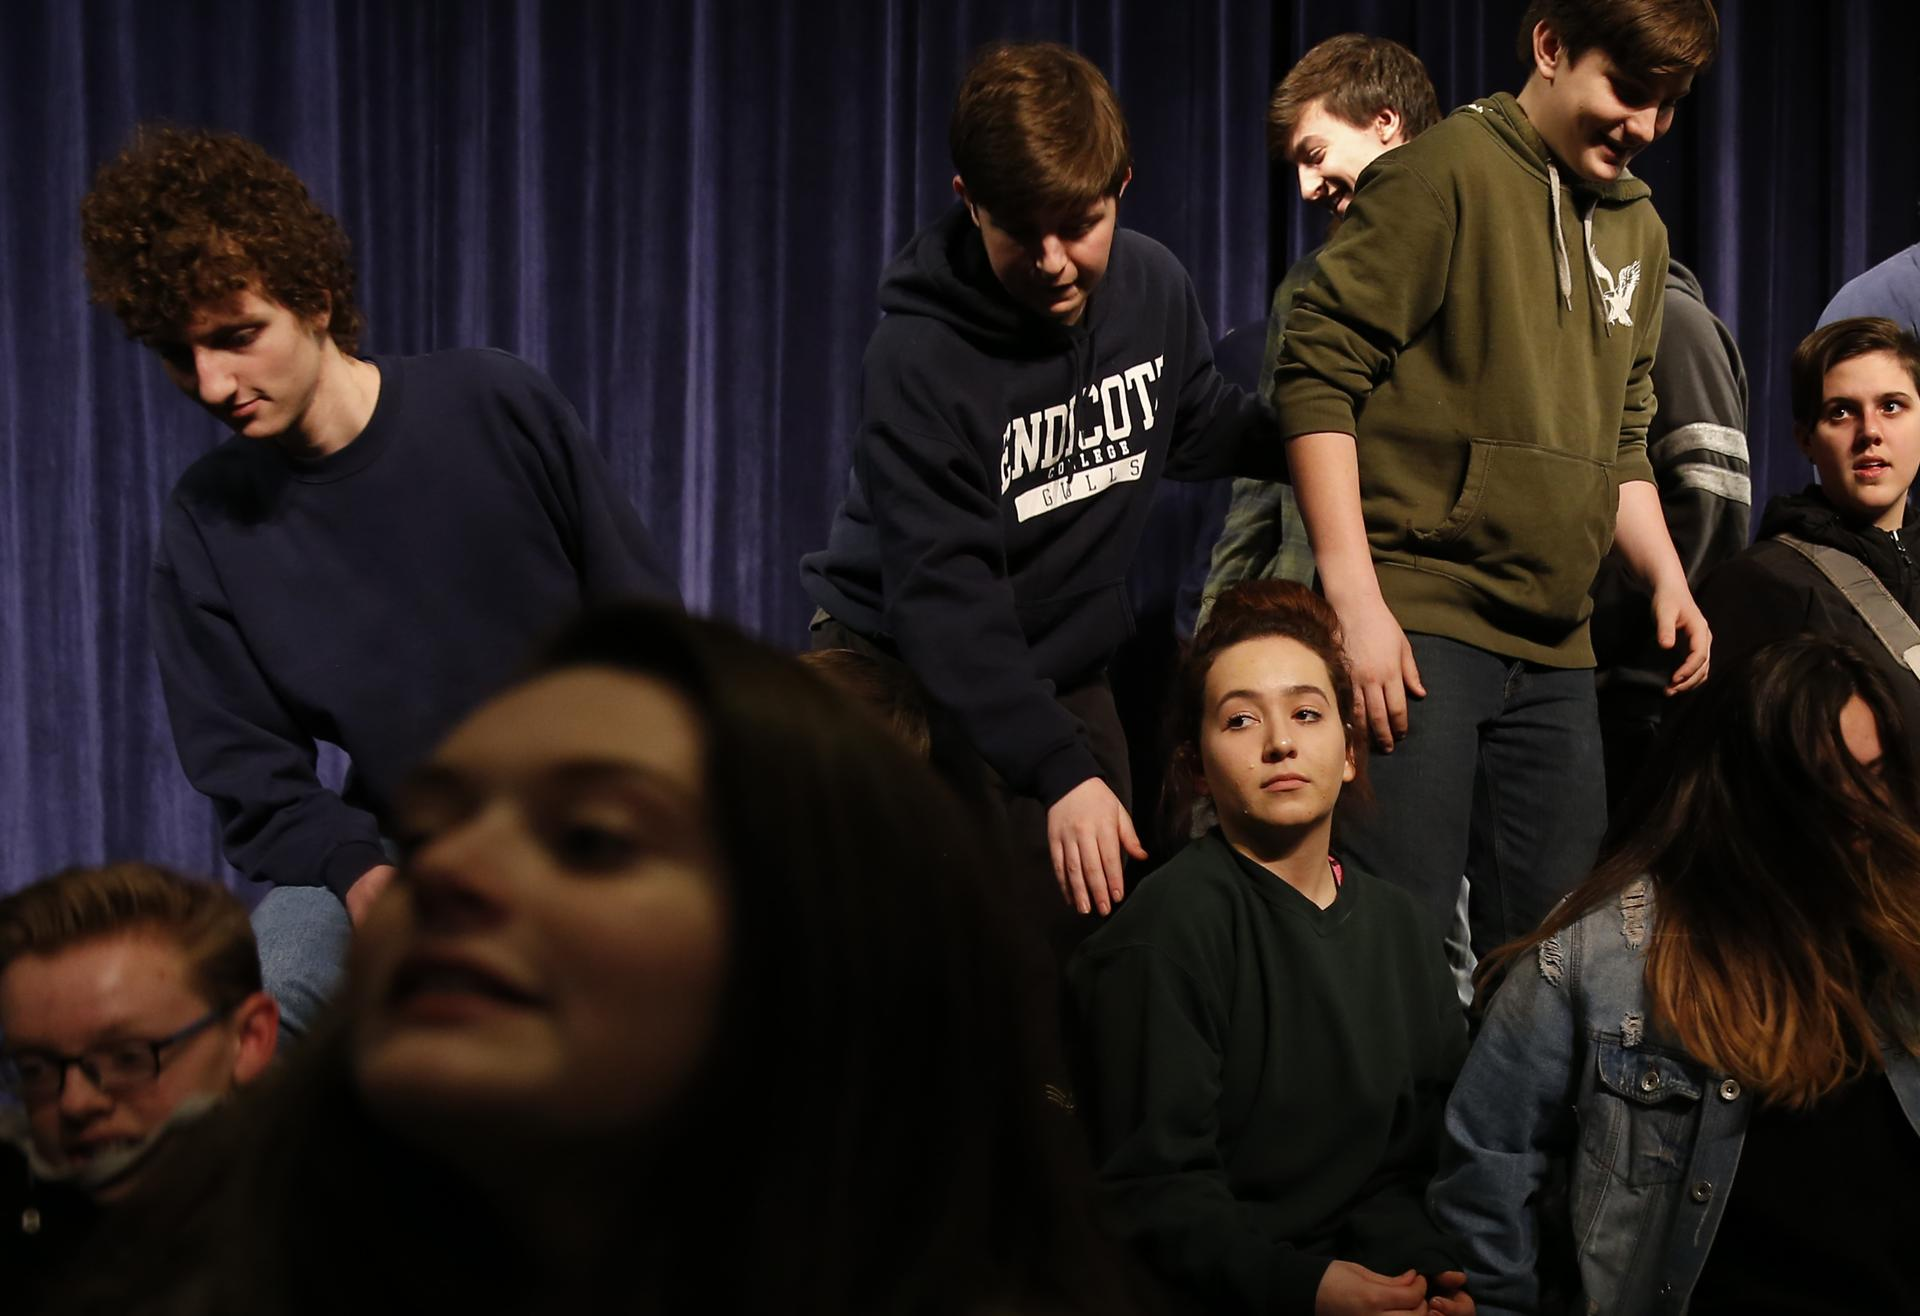 Hamilton, MA -- 3/06/2018 - At the technical rehearsal for semi-finals, Deb and the actors from the Peabody Veterans Memorial High School drama club disbanded after posing for a group photo. (Jessica Rinaldi/Globe Staff) Topic: Reporter: Jenna Russell